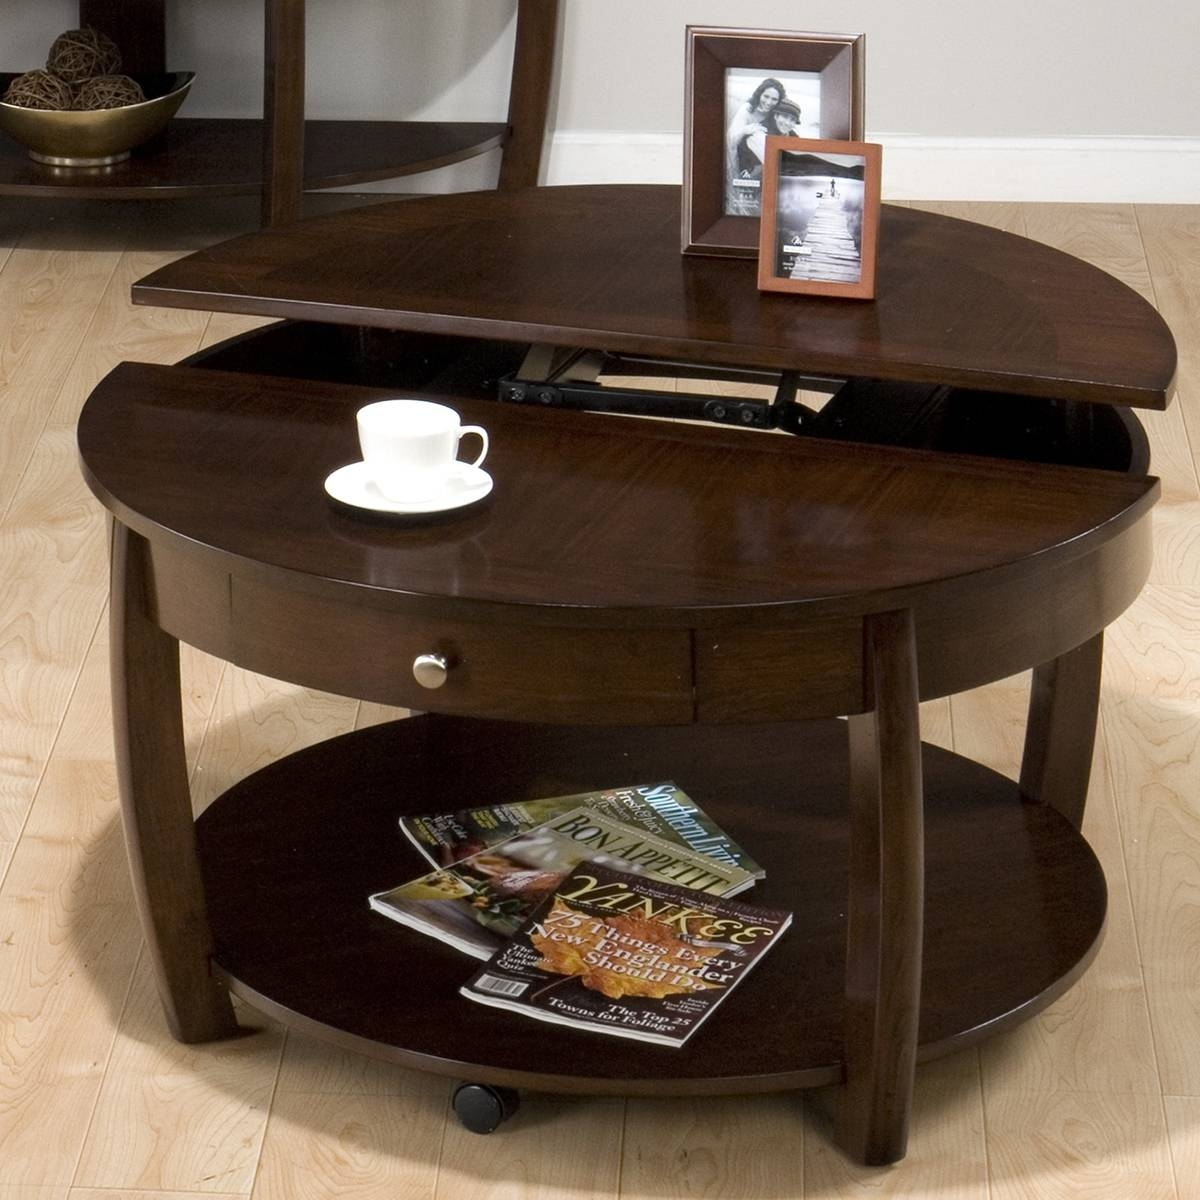 Walmart Coffee Table And End Tables | Coffee Tables Decoration For Small Circle Coffee Tables (View 30 of 30)